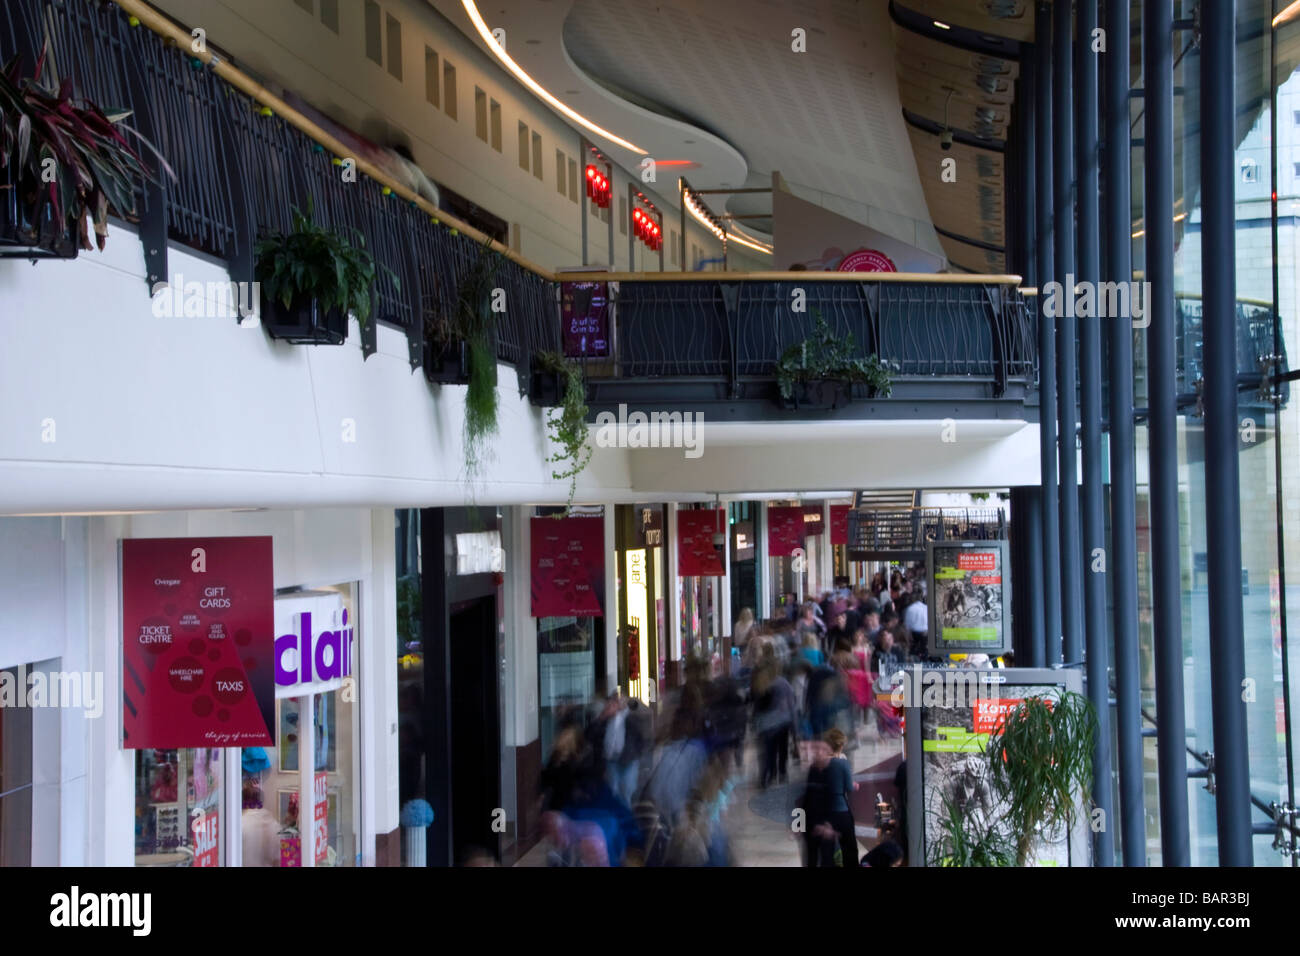 Crowds of shoppers rushing about looking for last minute bargains inside the Overgate shopping mall in Dundee,UK Stock Photo